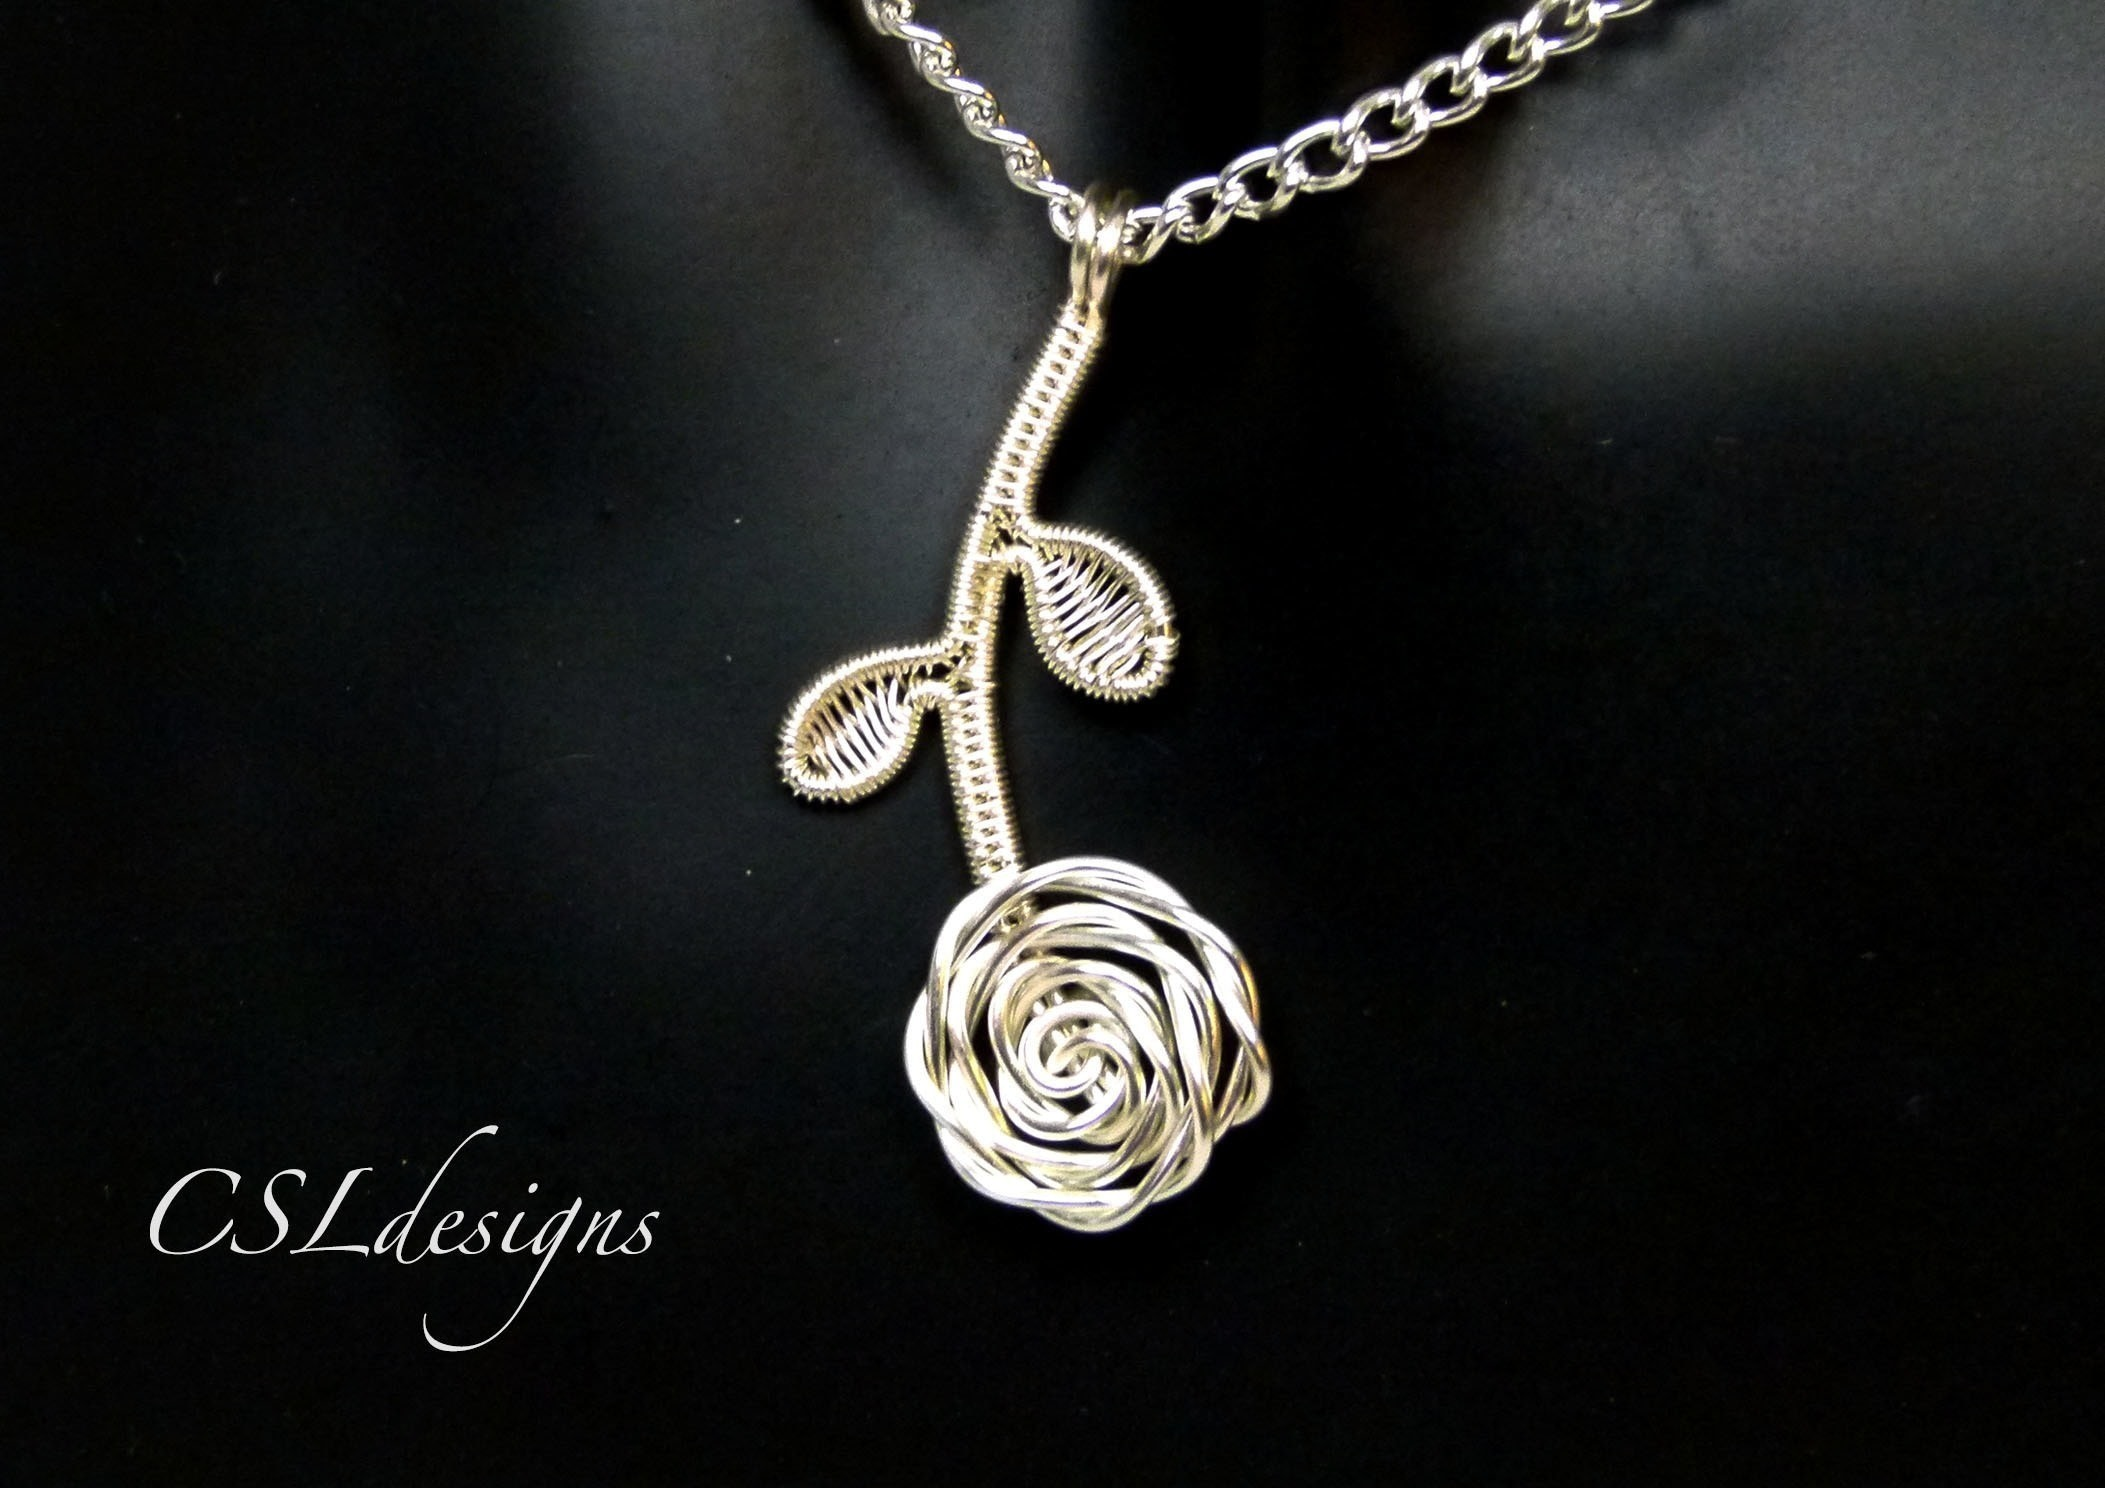 Rose wirework pendant how to make a wire wrapped pendant jewelry make this cute wirework rose pendant free tutorial with pictures on how to make a mozeypictures Choice Image